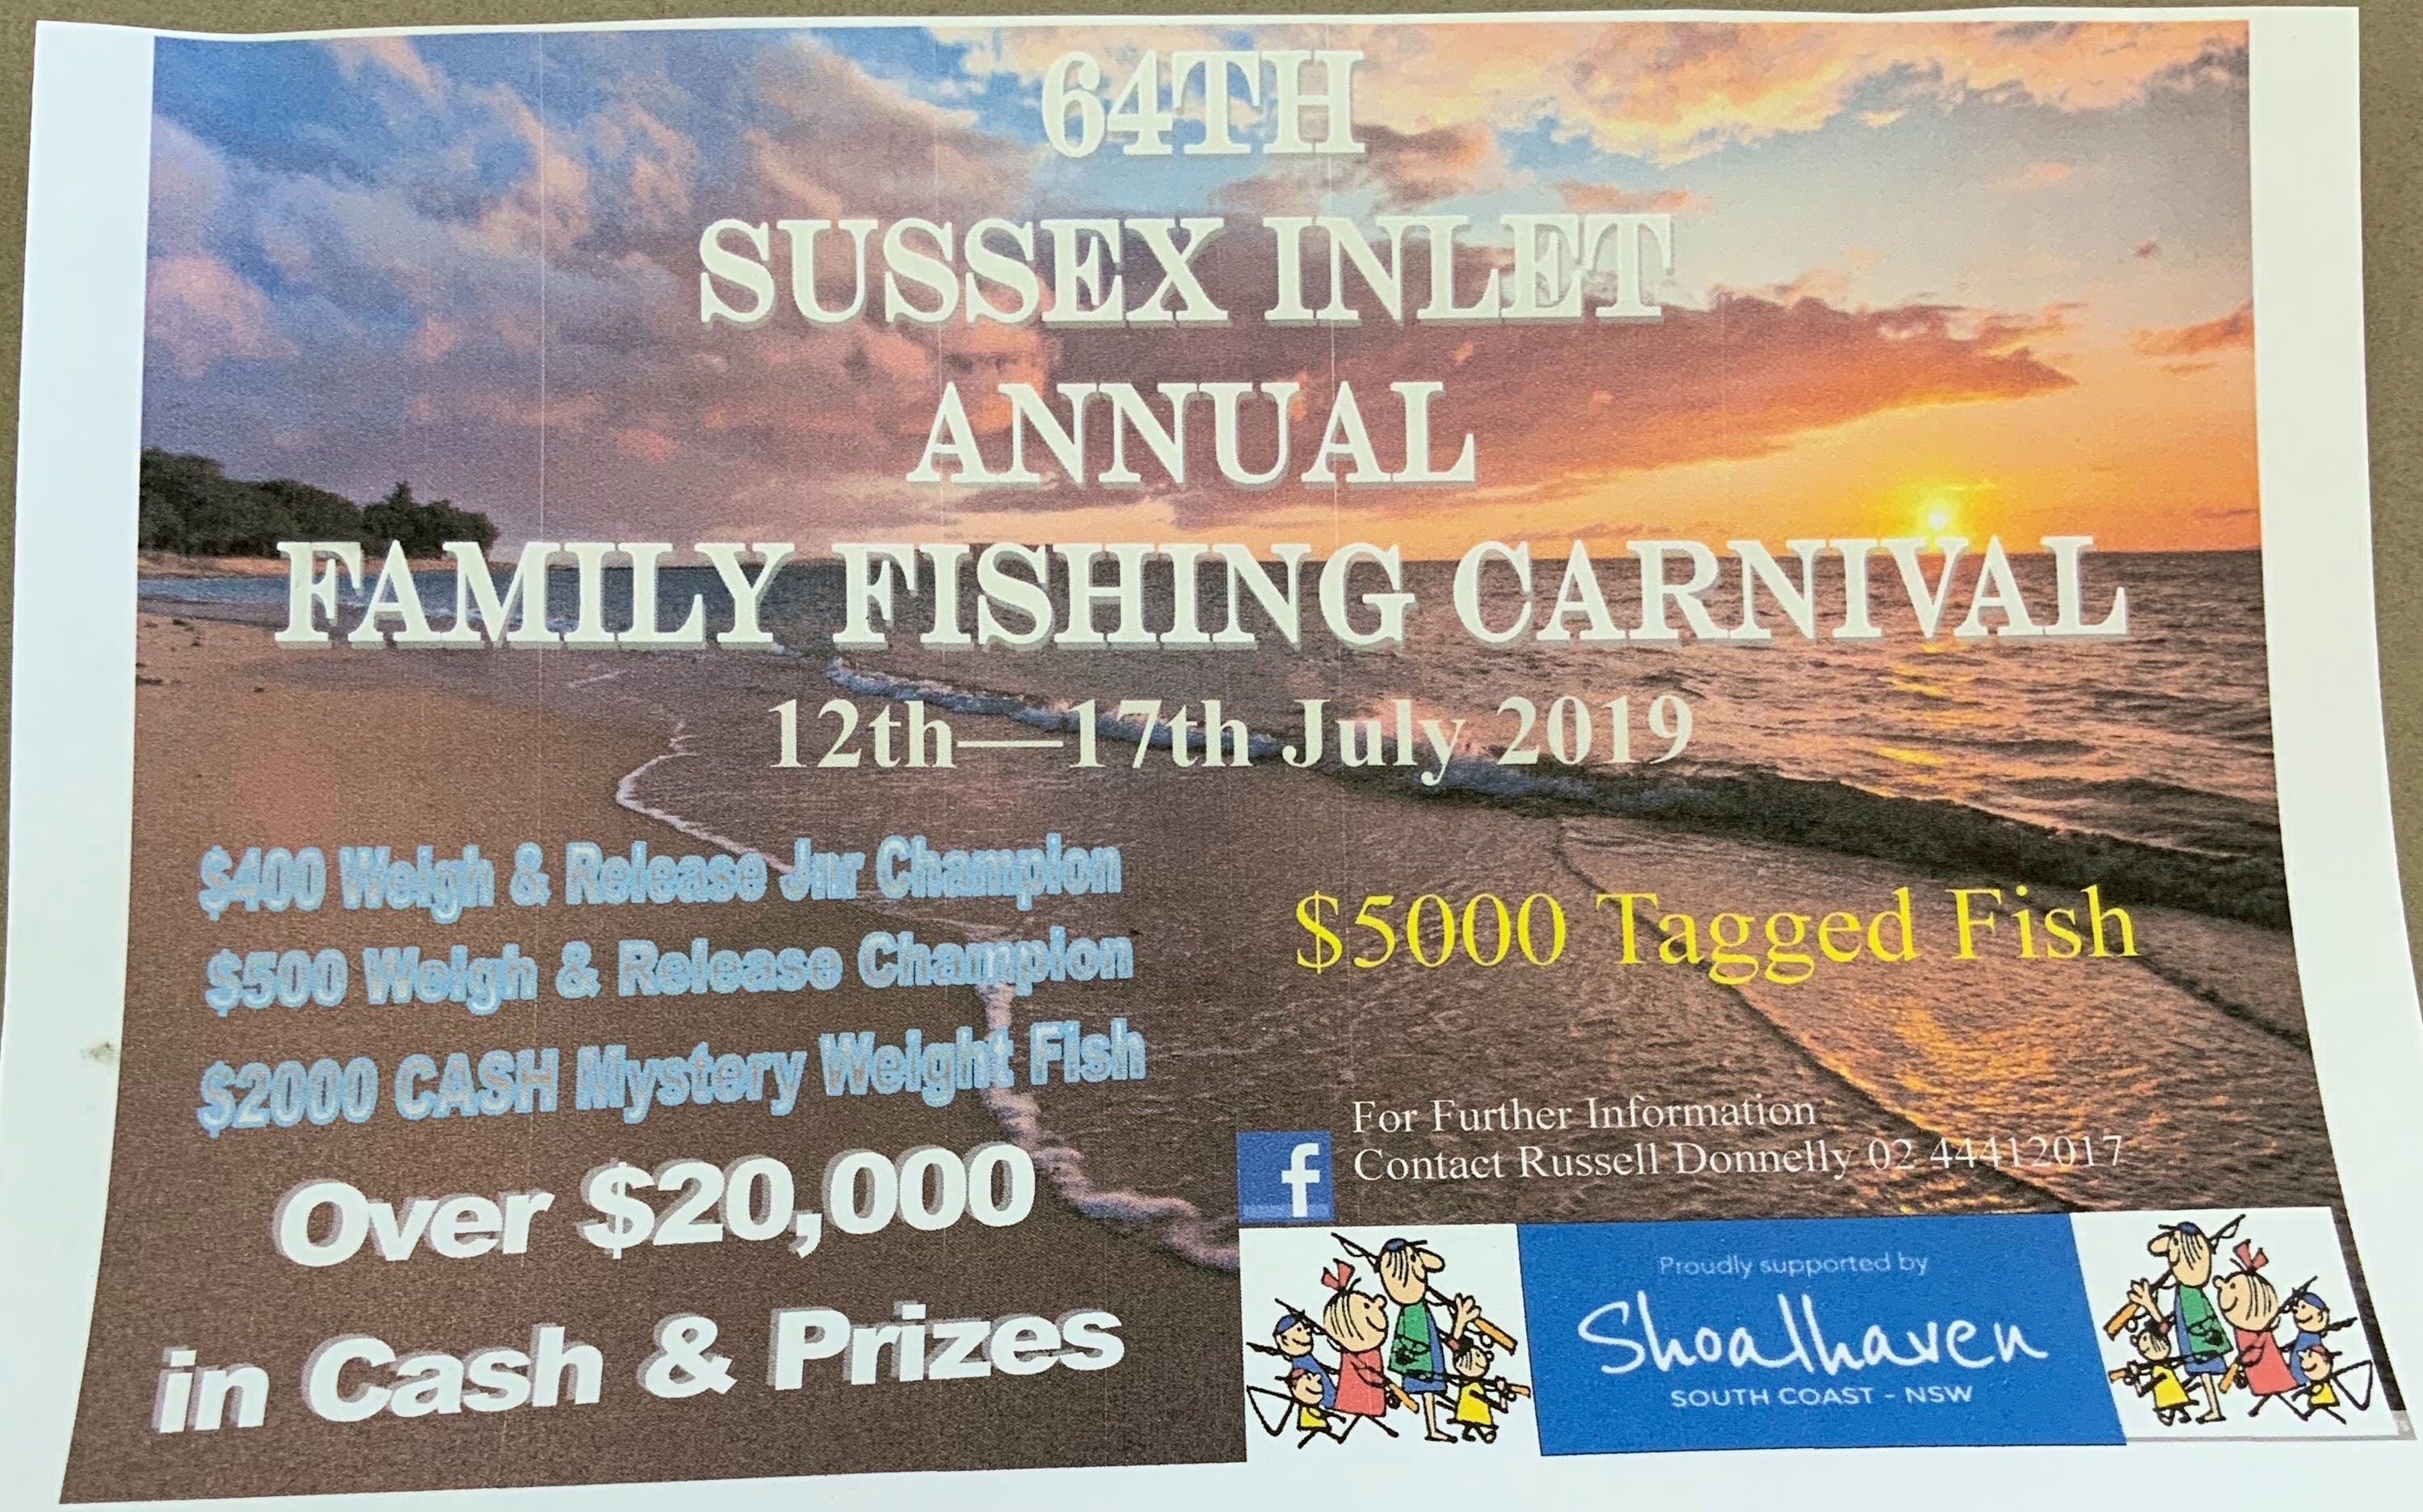 The Sussex Inlet Annual Family Fishing Carnival - Accommodation Brisbane